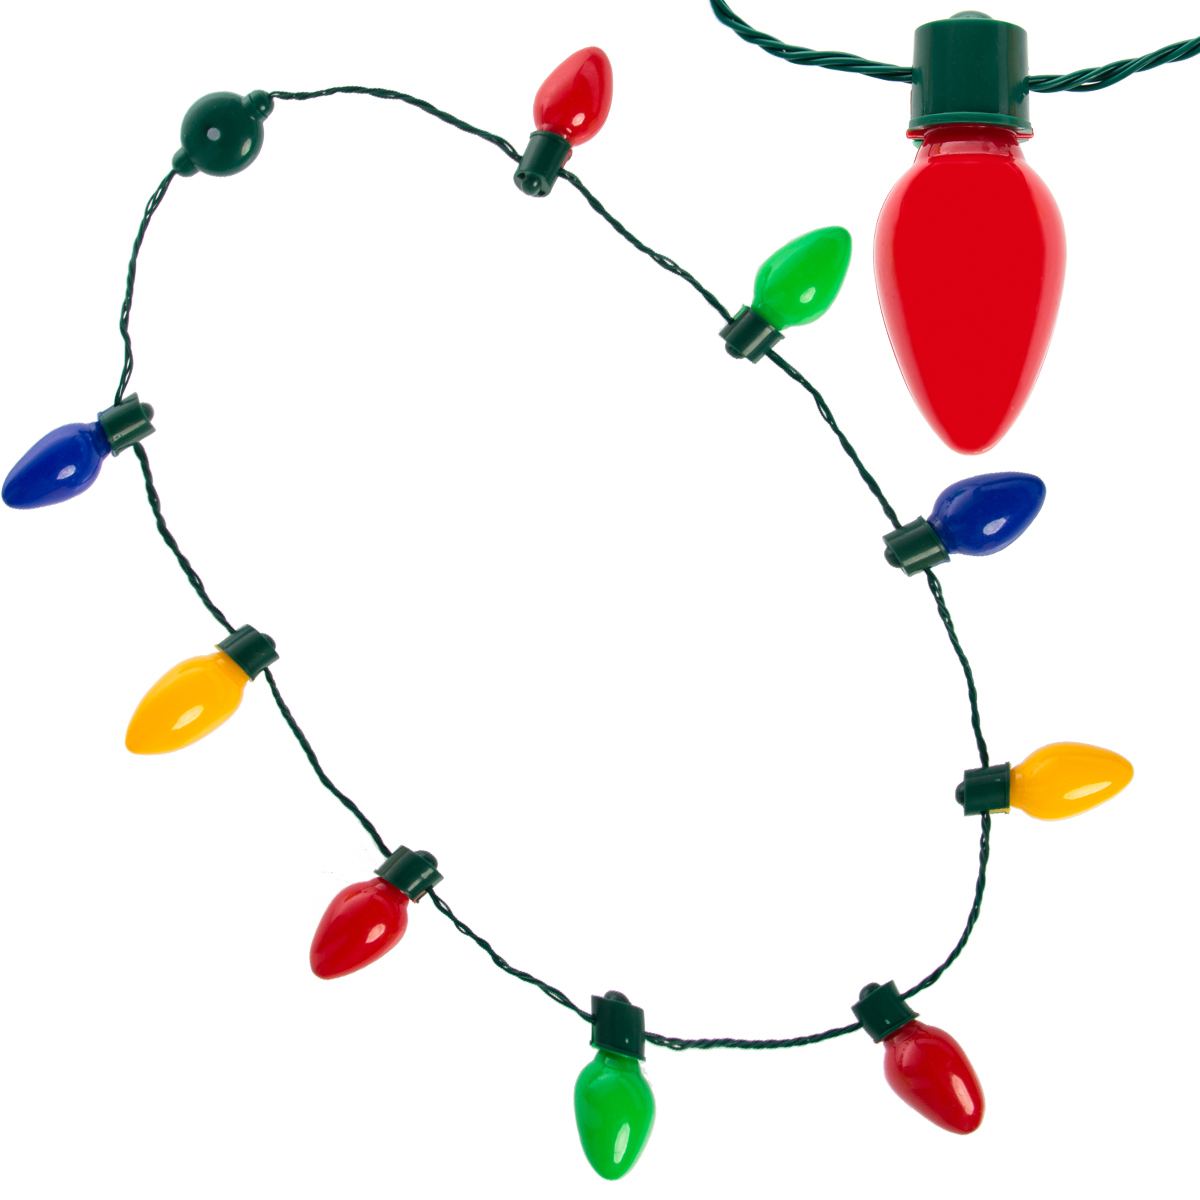 Simply Genius LED Light Up Christmas Bulb Necklace For Kids and Adults, Holiday Party Favor Lighted String Light Gifts Bulk Lot Battery Included